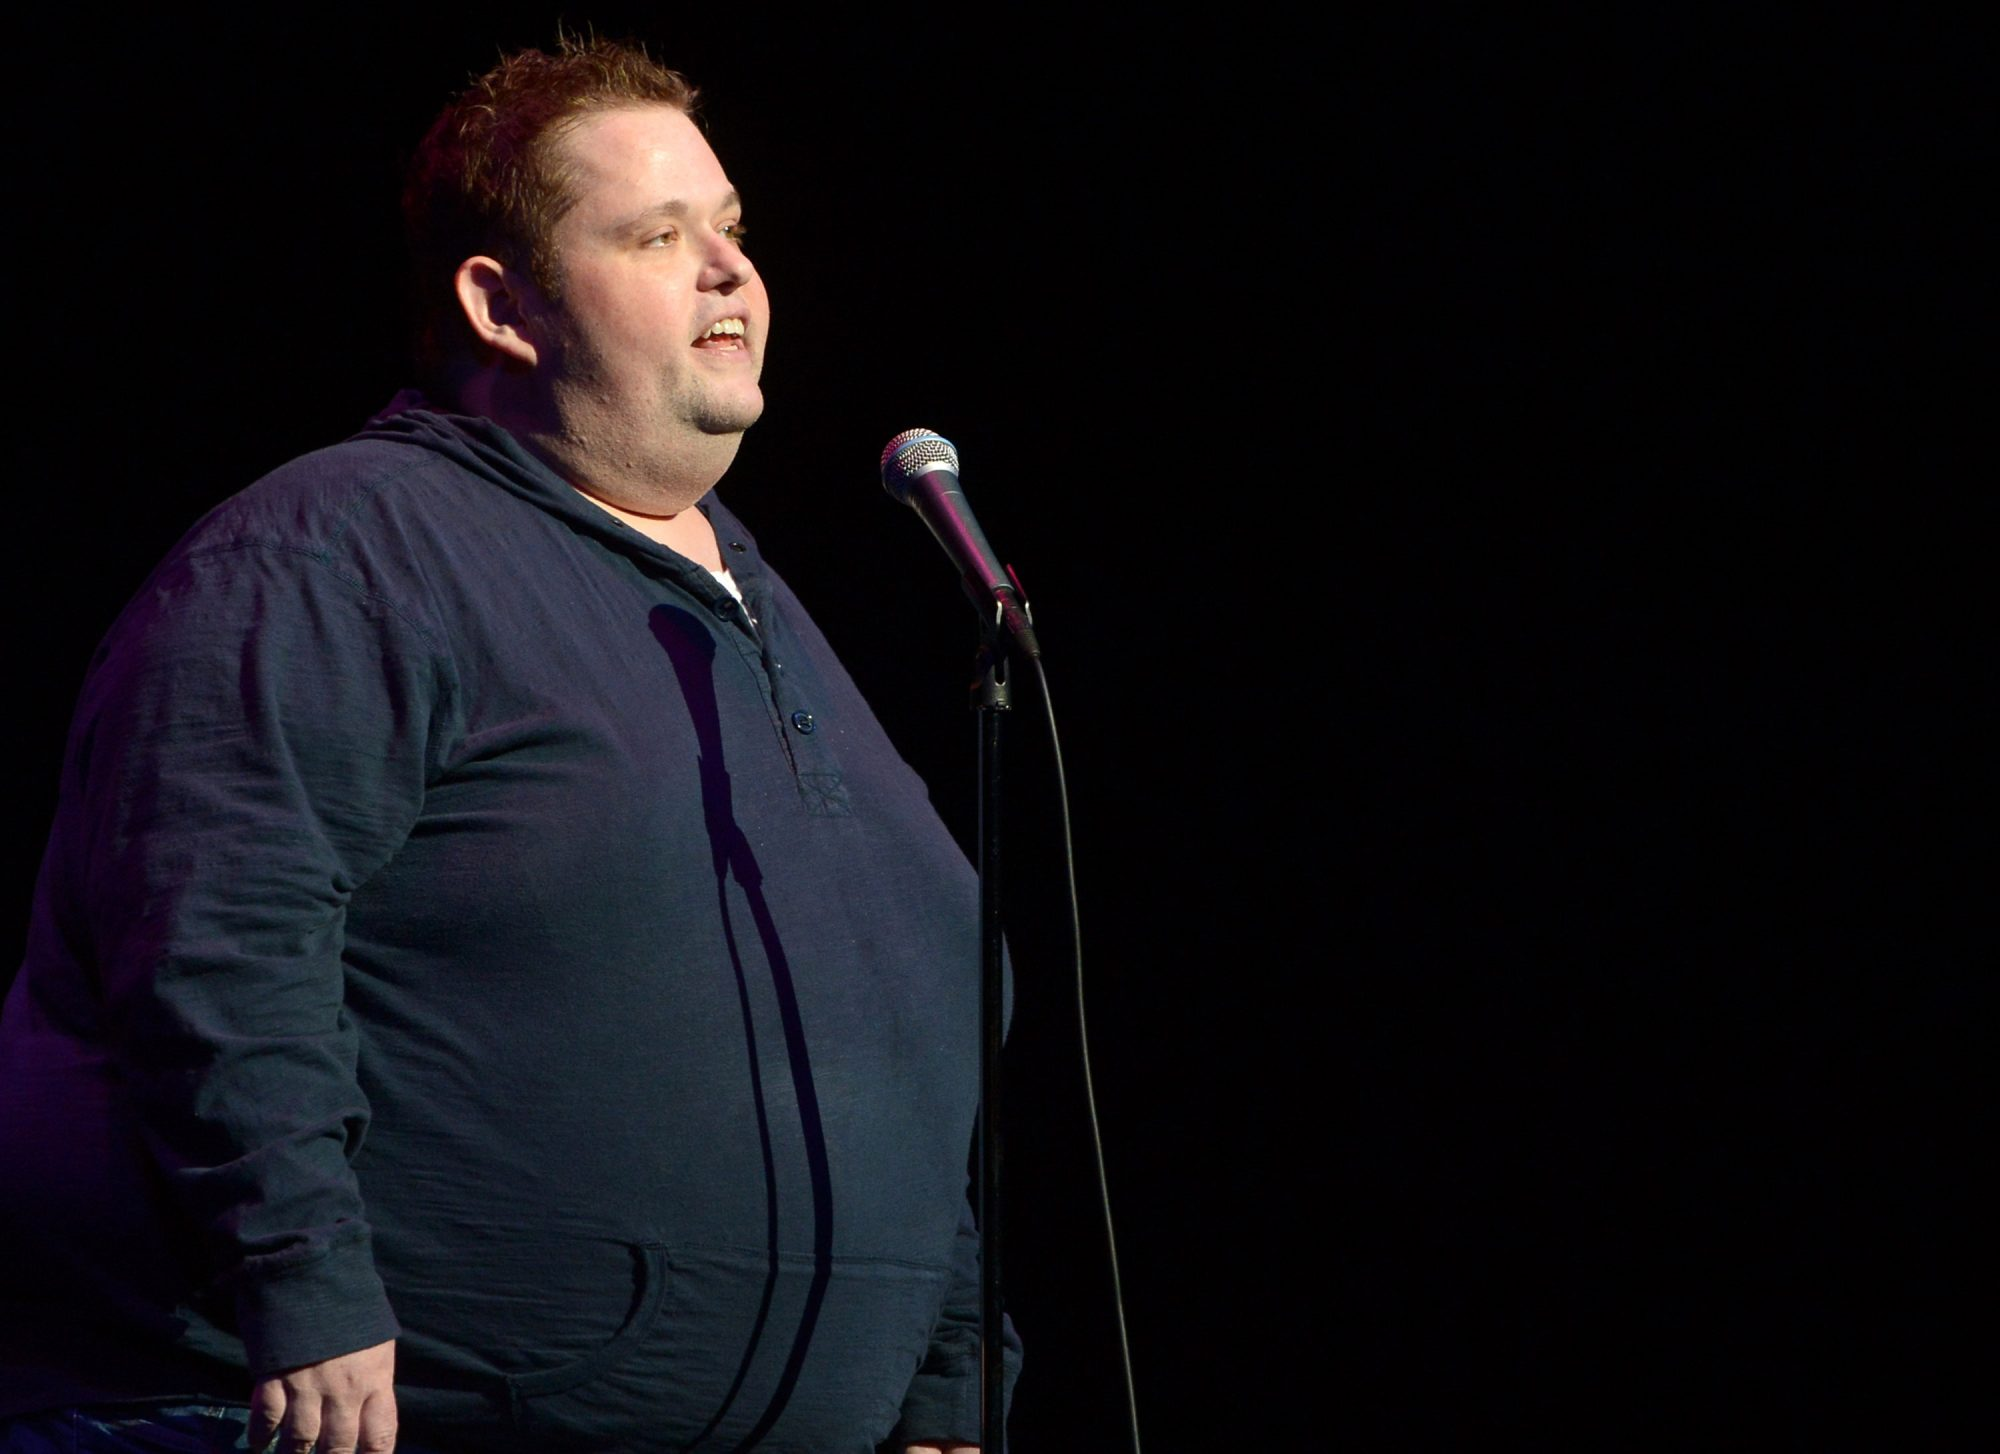 Comedian Ralphie May on stage before his death from hypertensive cardiovascular disease